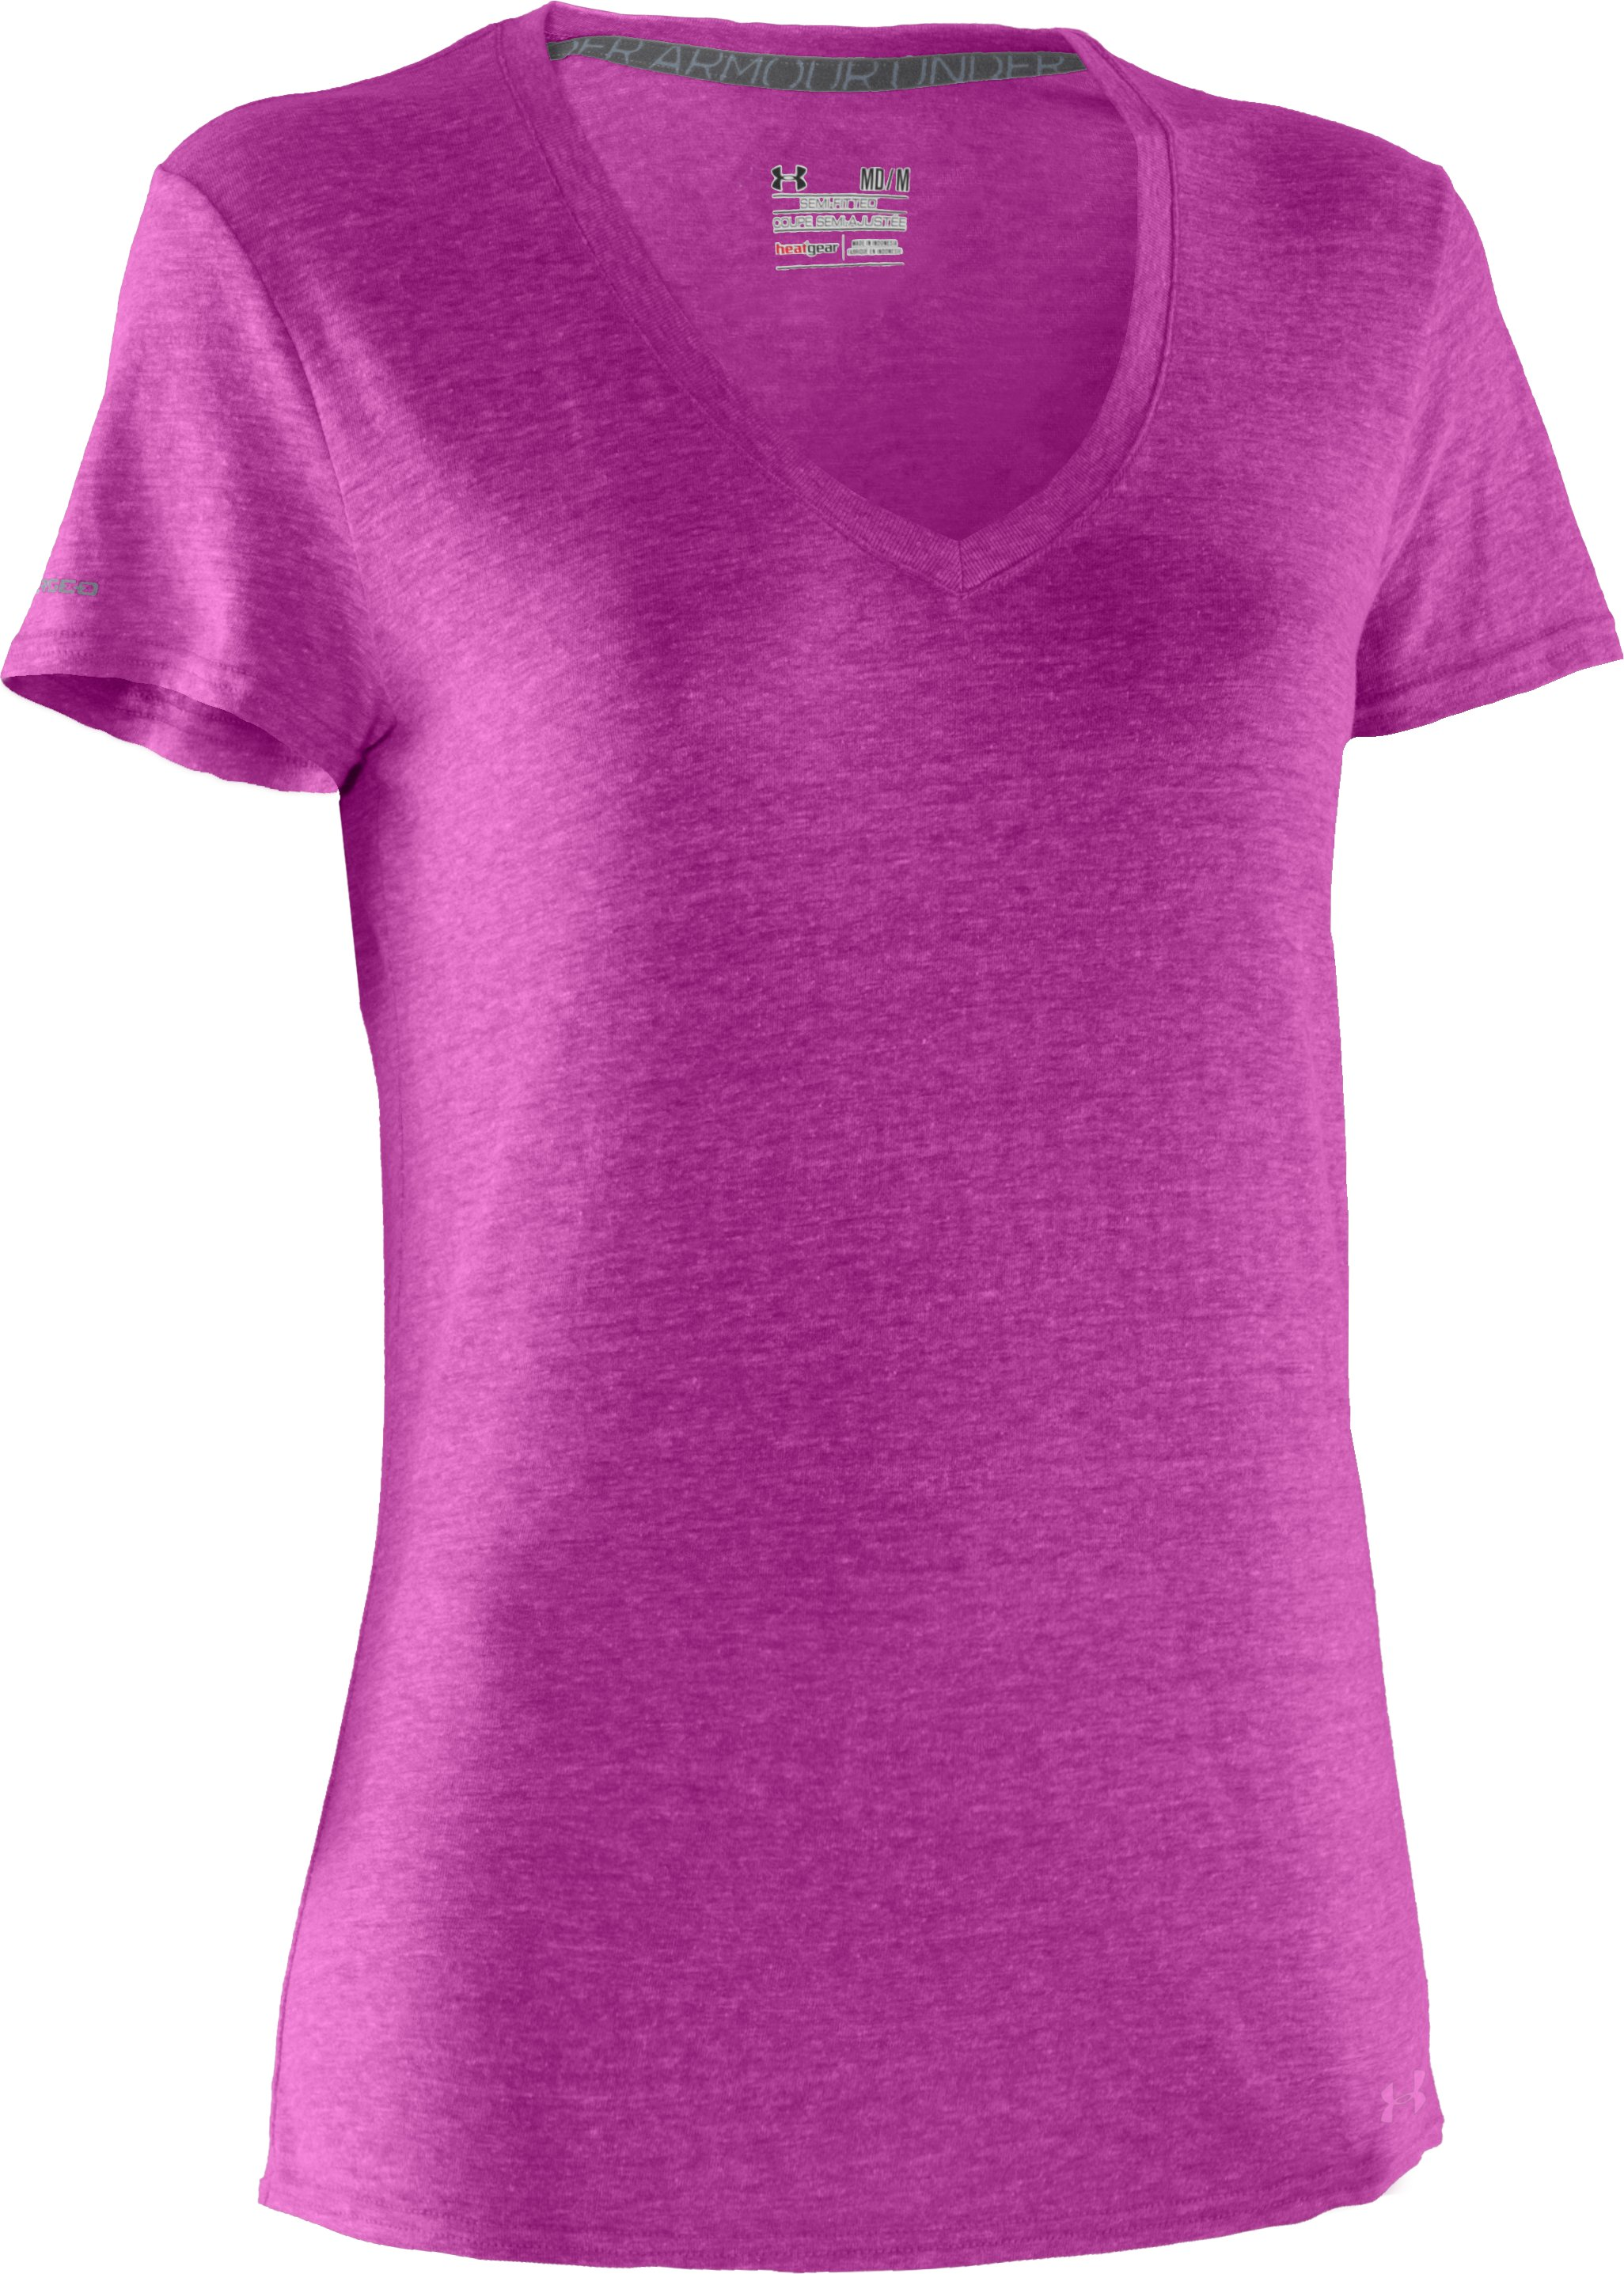 Women's Charged Cotton® Undeniable T-Shirt, STROBE, undefined